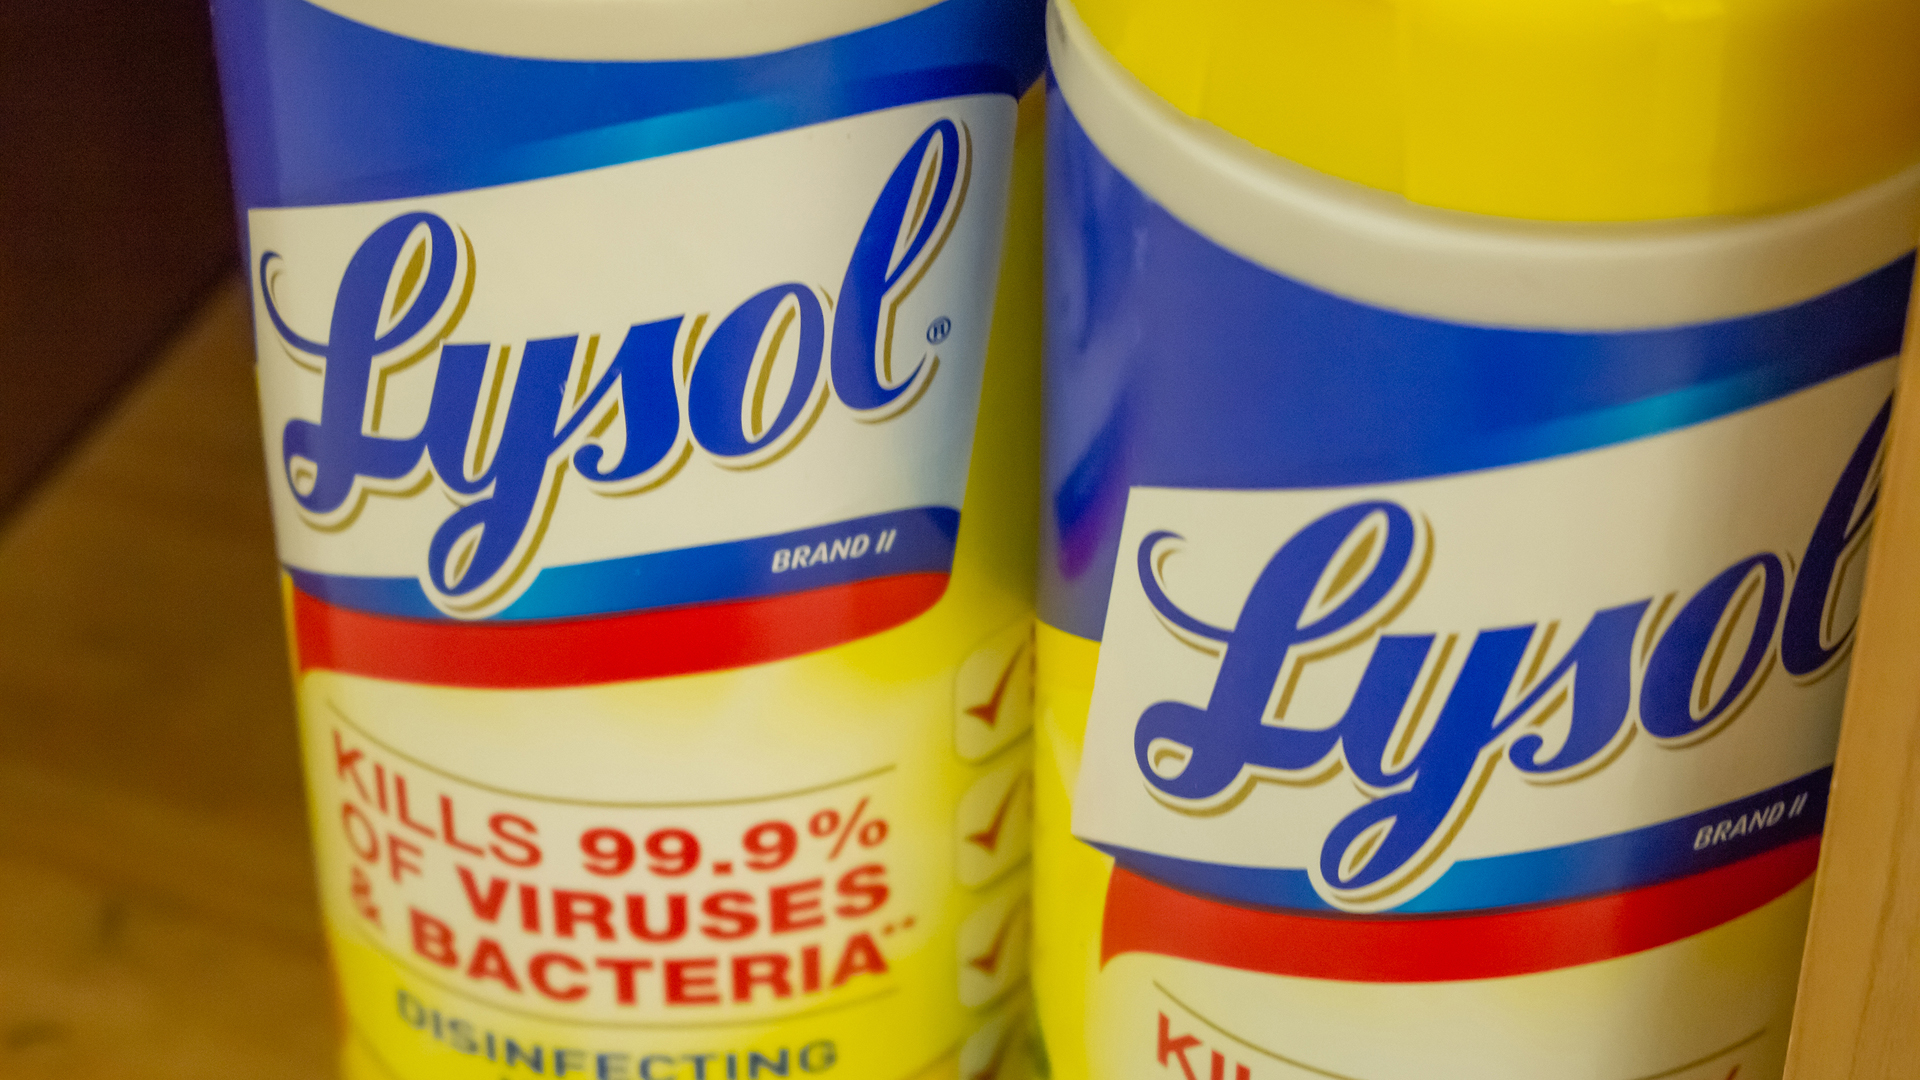 Lysol wipes -- cool for wiping down desks when you're sick, potentially protective against the novel coronavirus. (Shutterstock)